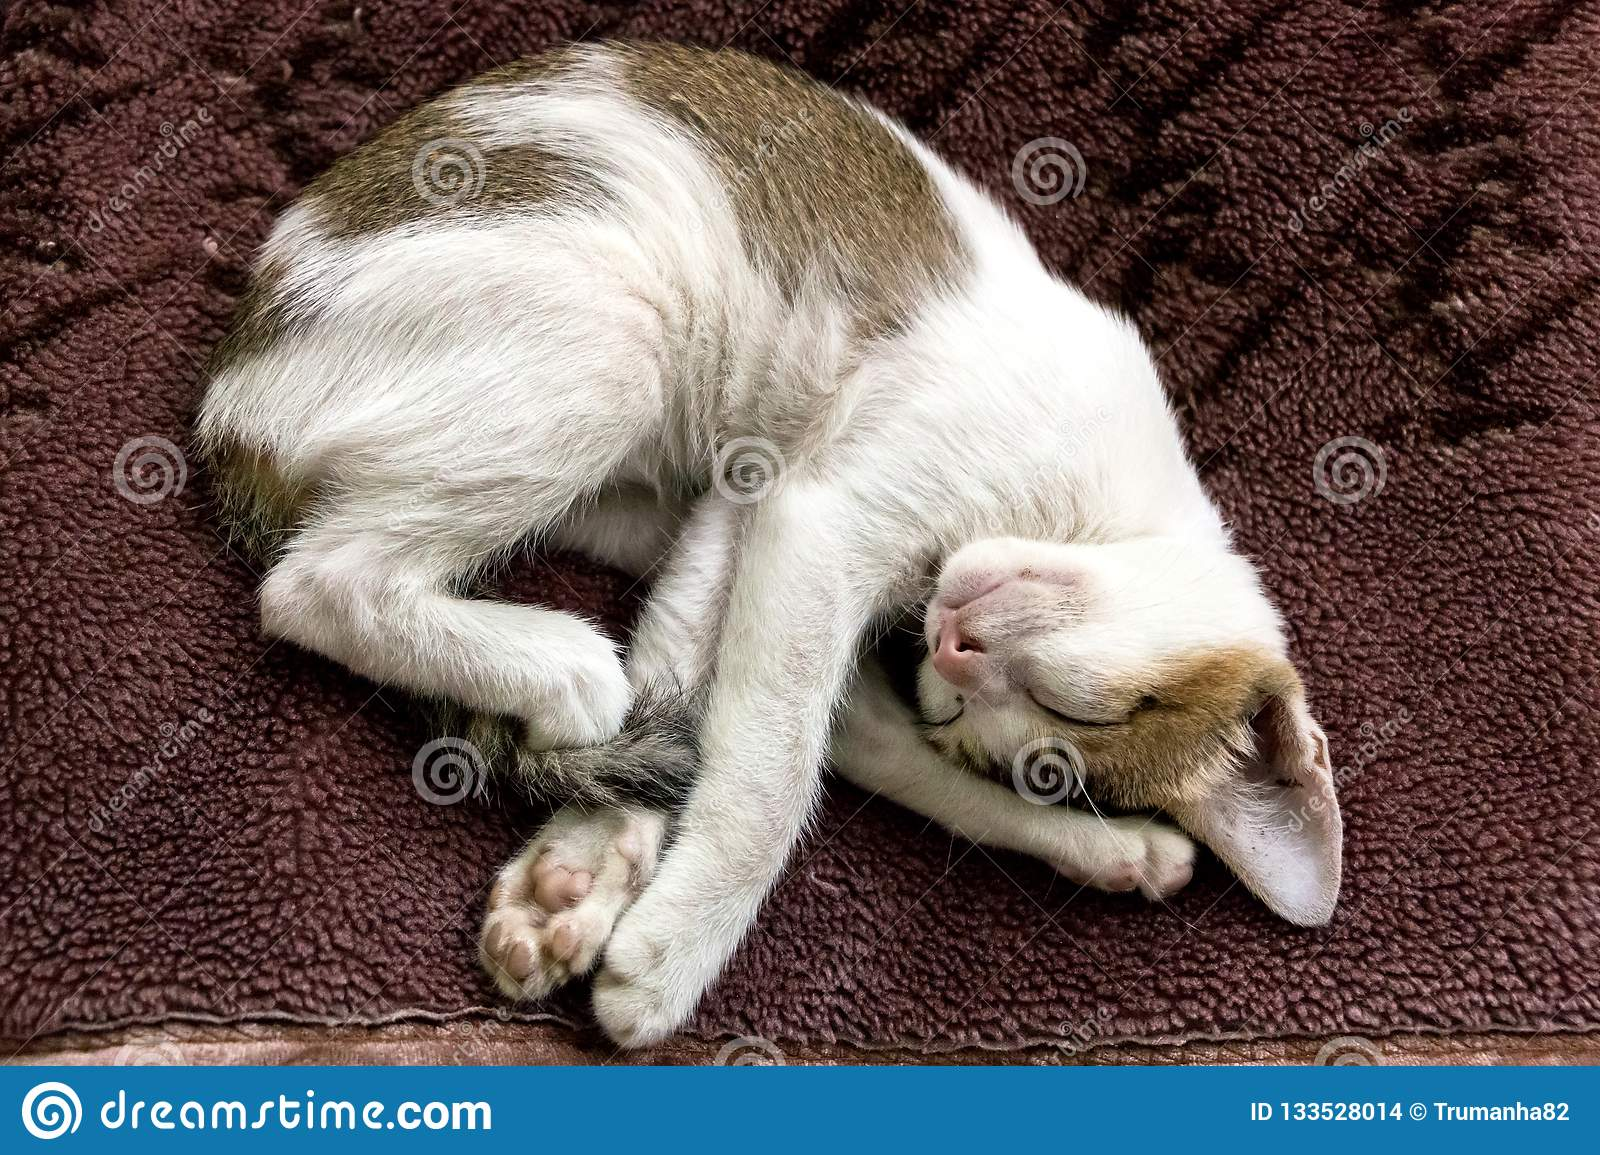 Image of a young Calico cat posing a funny position while sleeping on a brown velvet blanket.